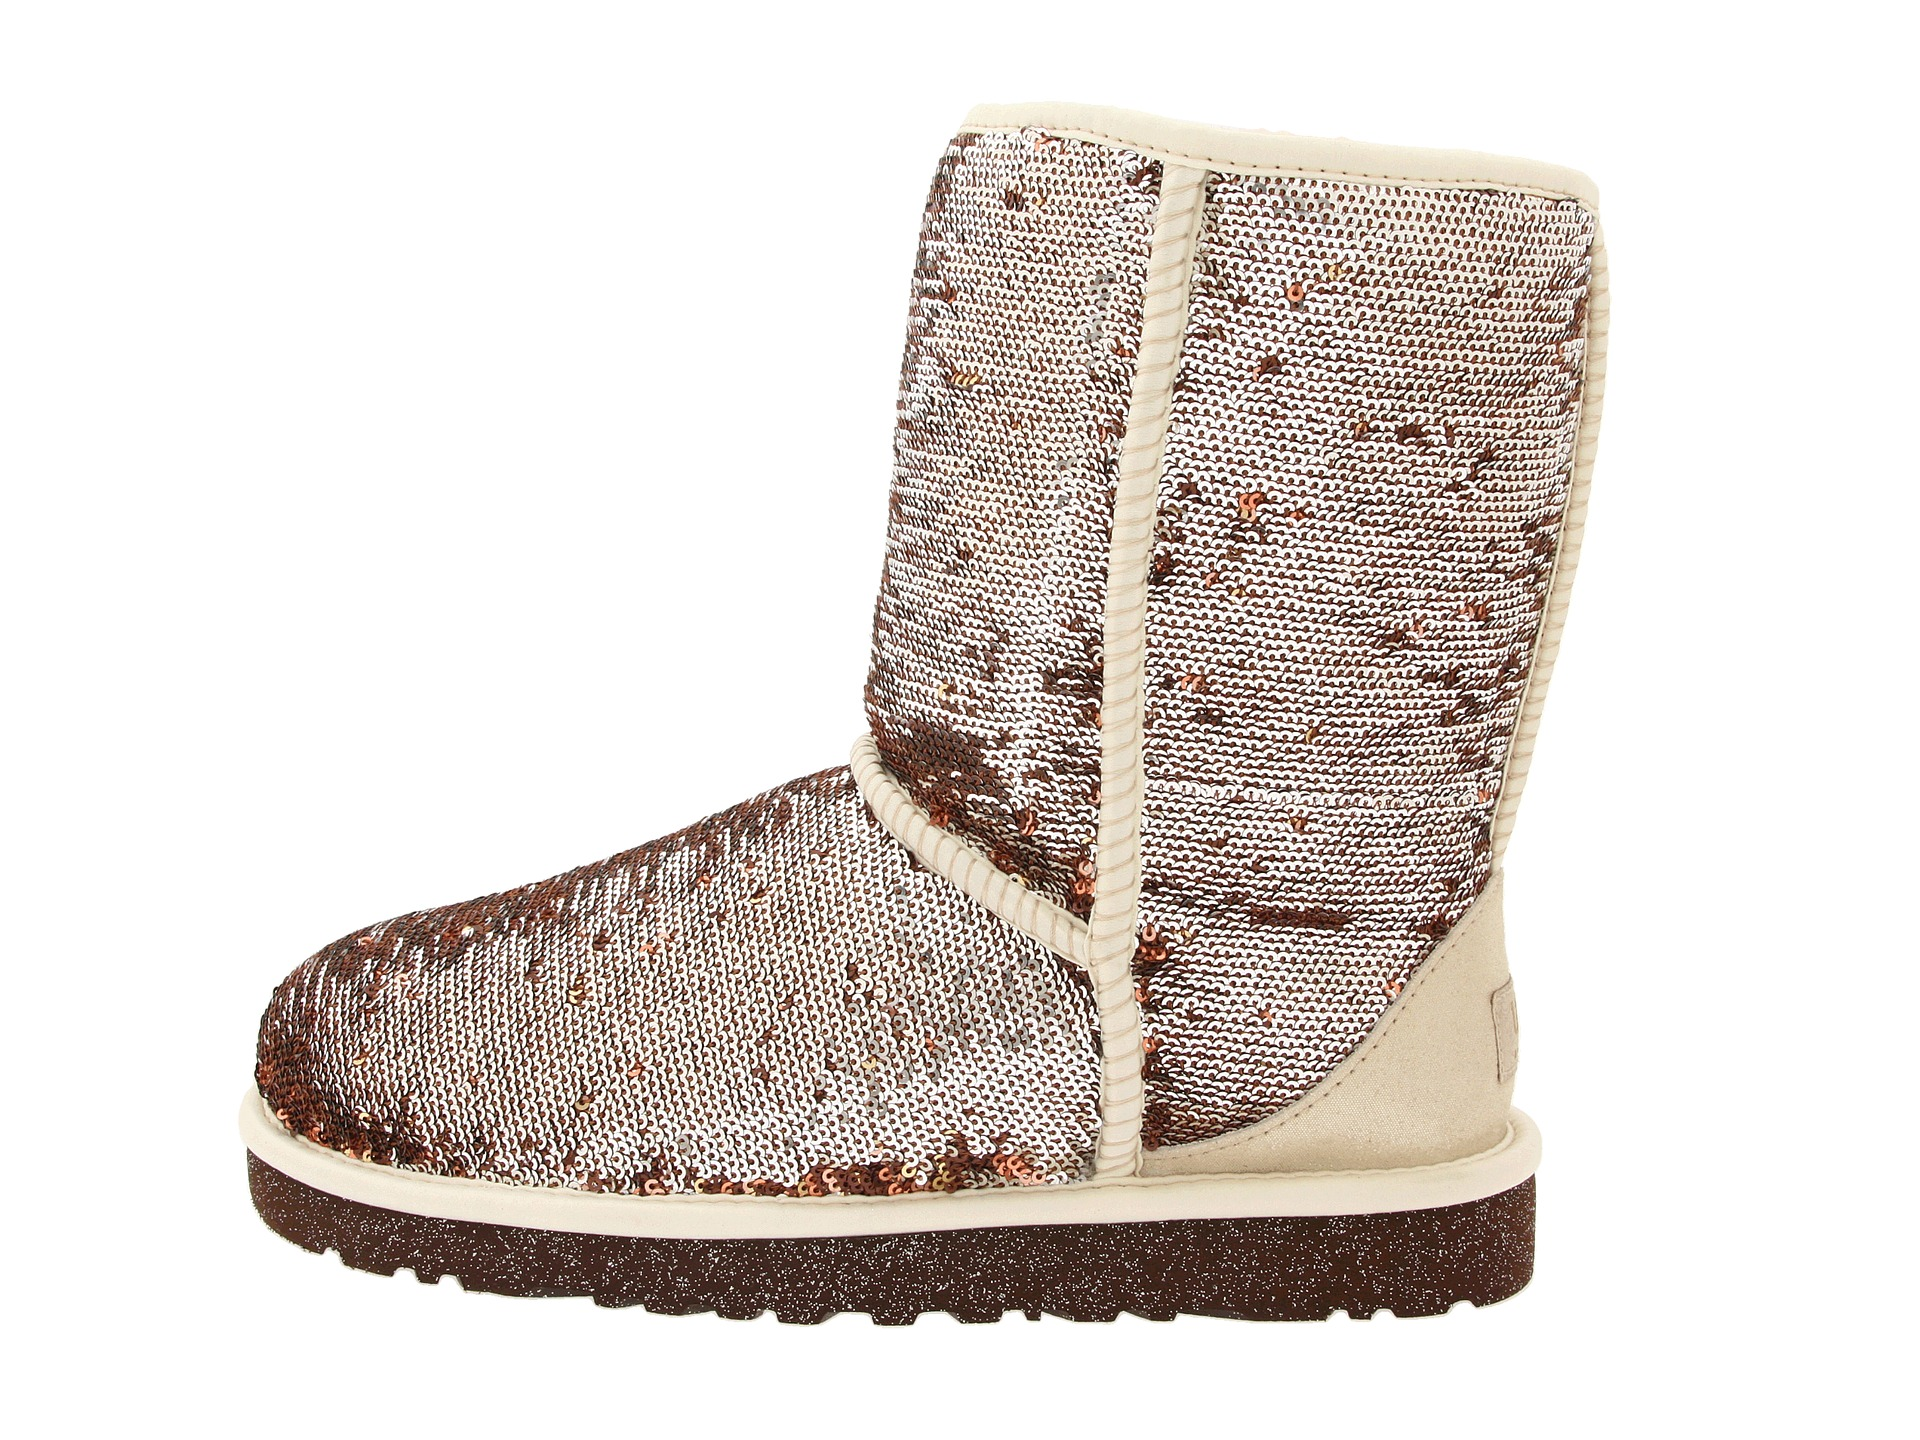 Sequin Ugg Boots Amazon Division Of Global Affairs